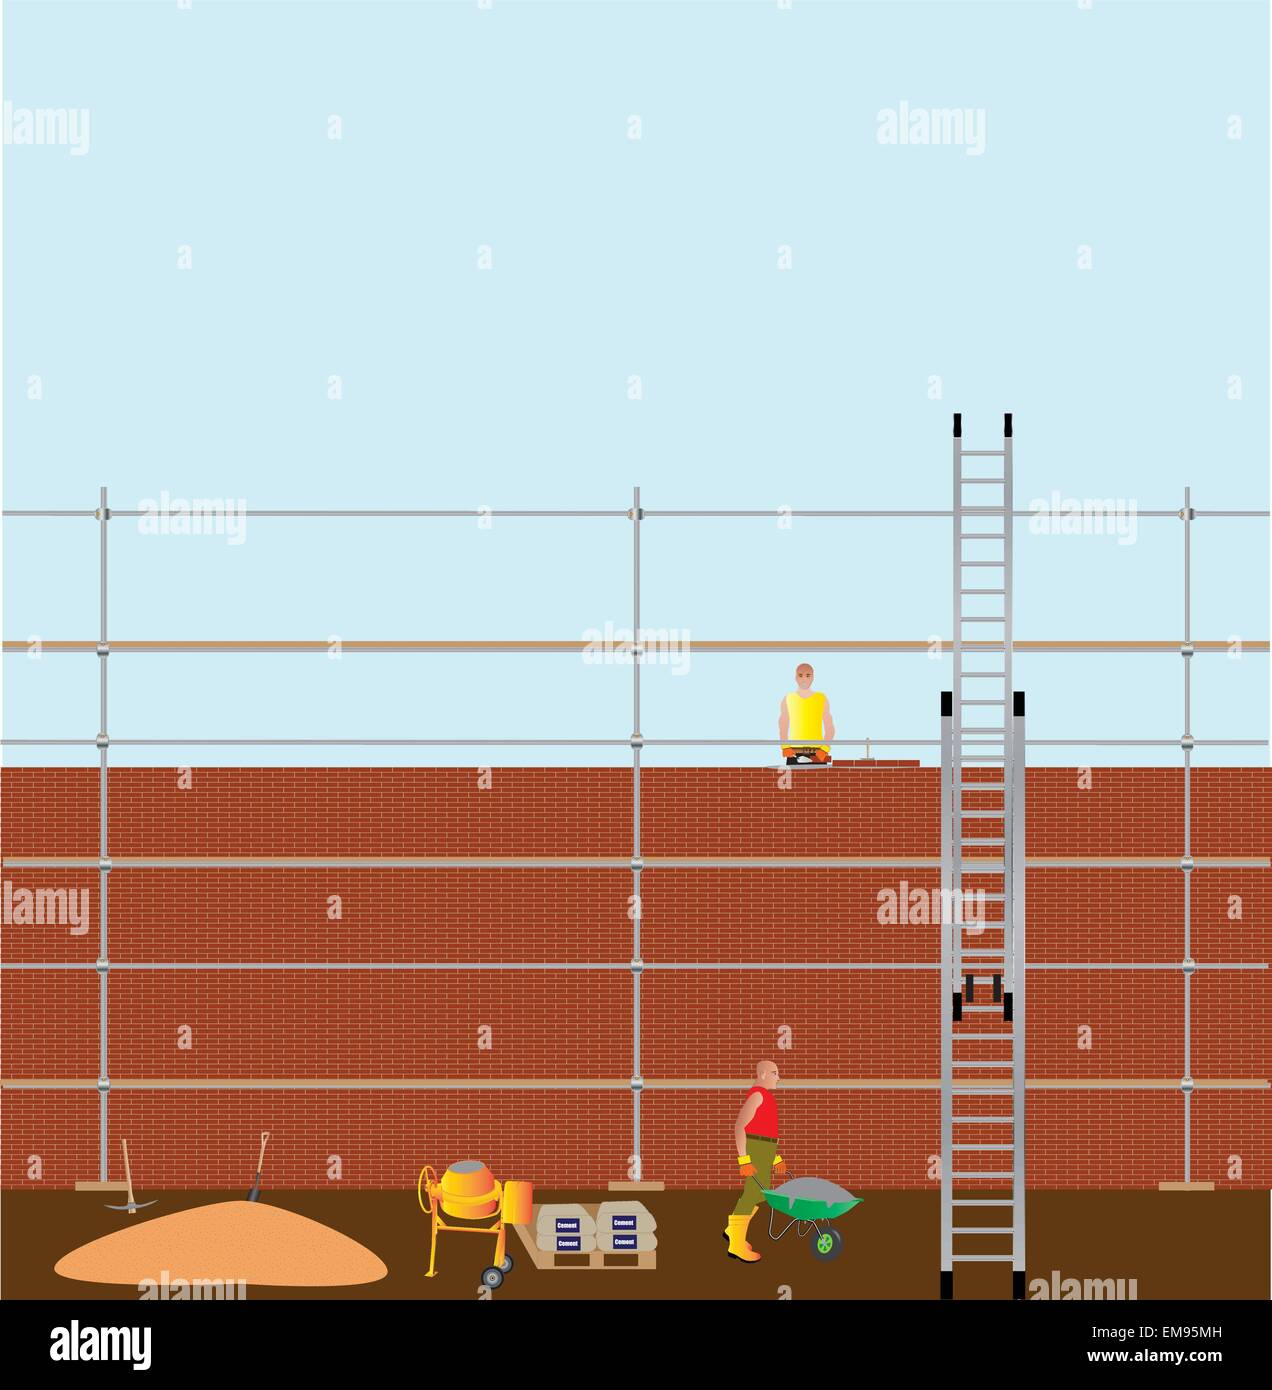 A vector illustration of Construction Workers building a brick wall, with cement mixer, scaffolding and a ladder - Stock Vector